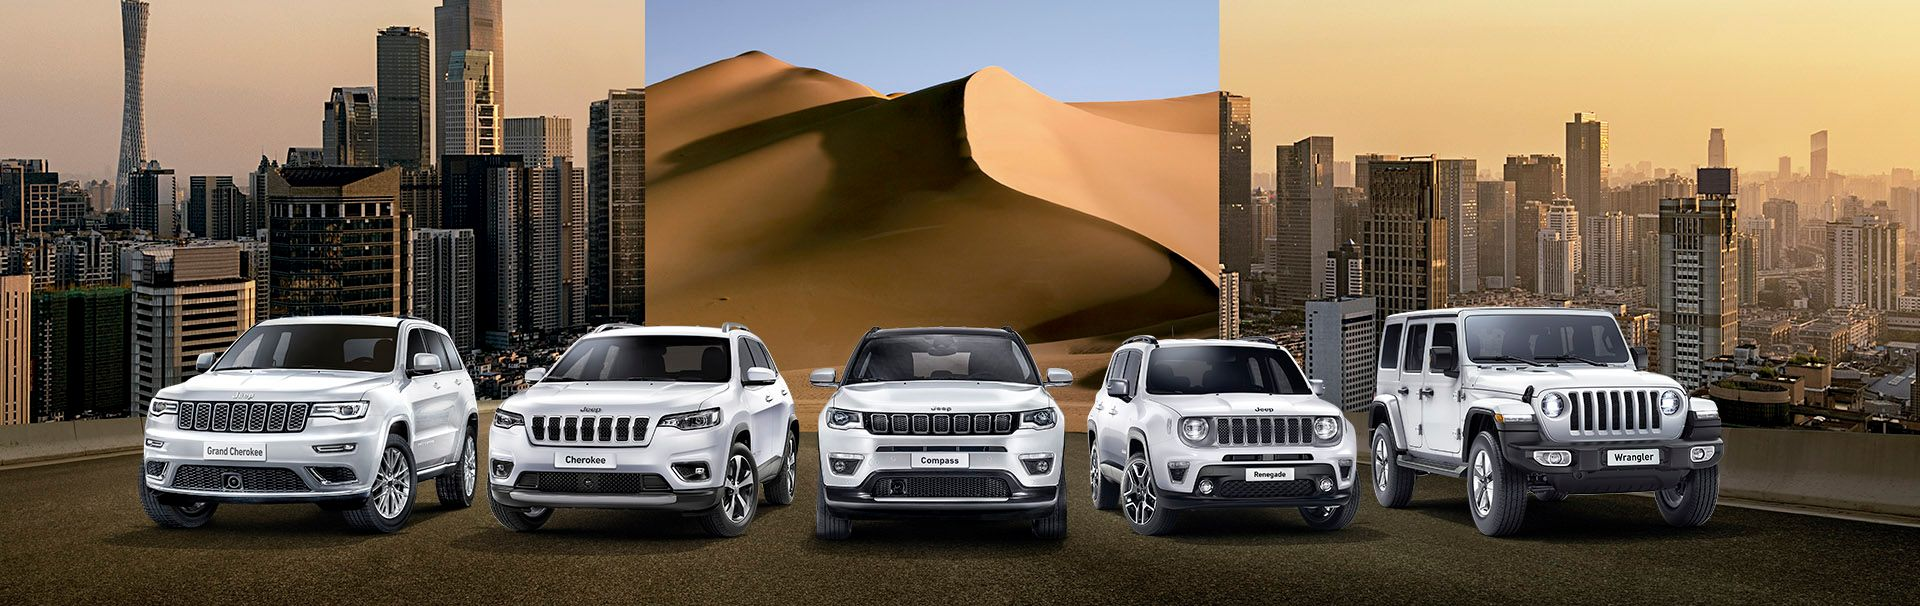 Nouvelle gamme Jeep. Born to be wild.